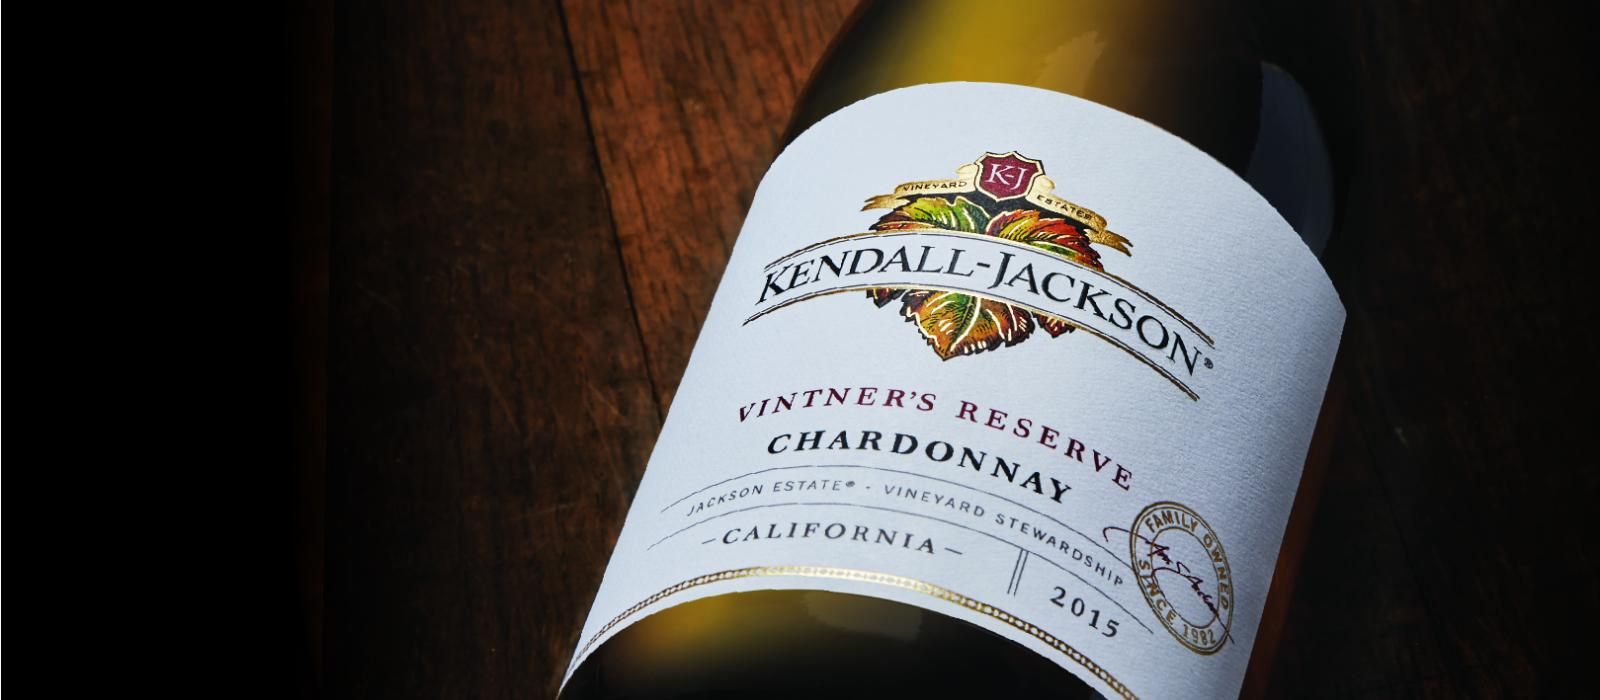 Kendall-Jackson Named Winery of the Year